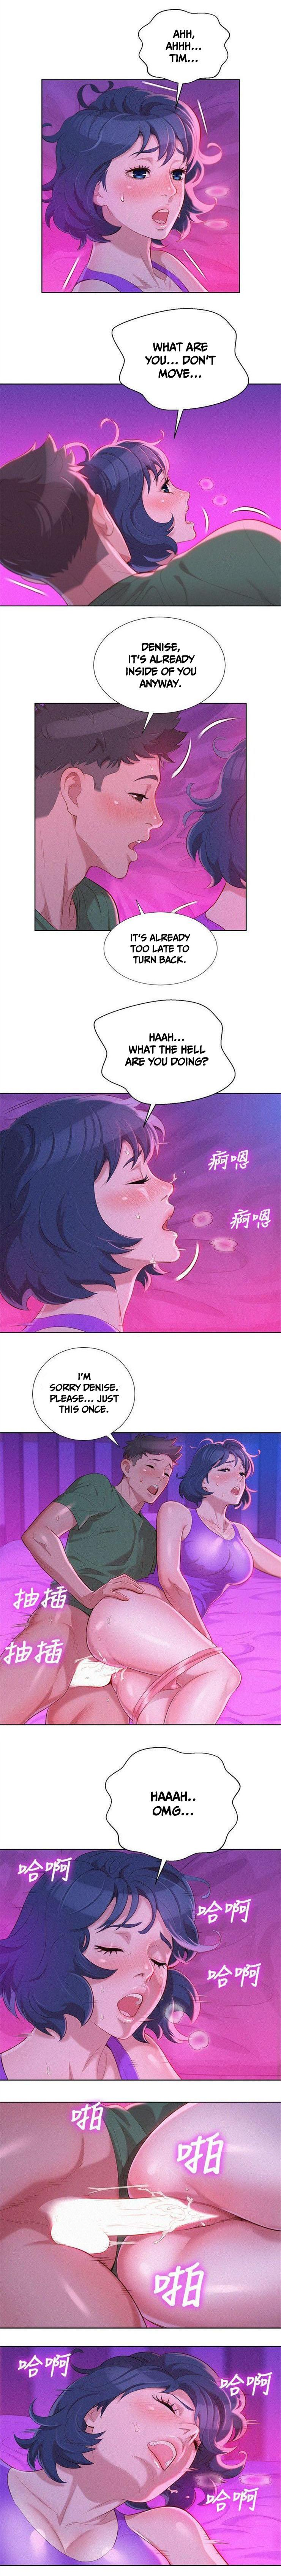 What do you Take me For? Ch.70/? 286